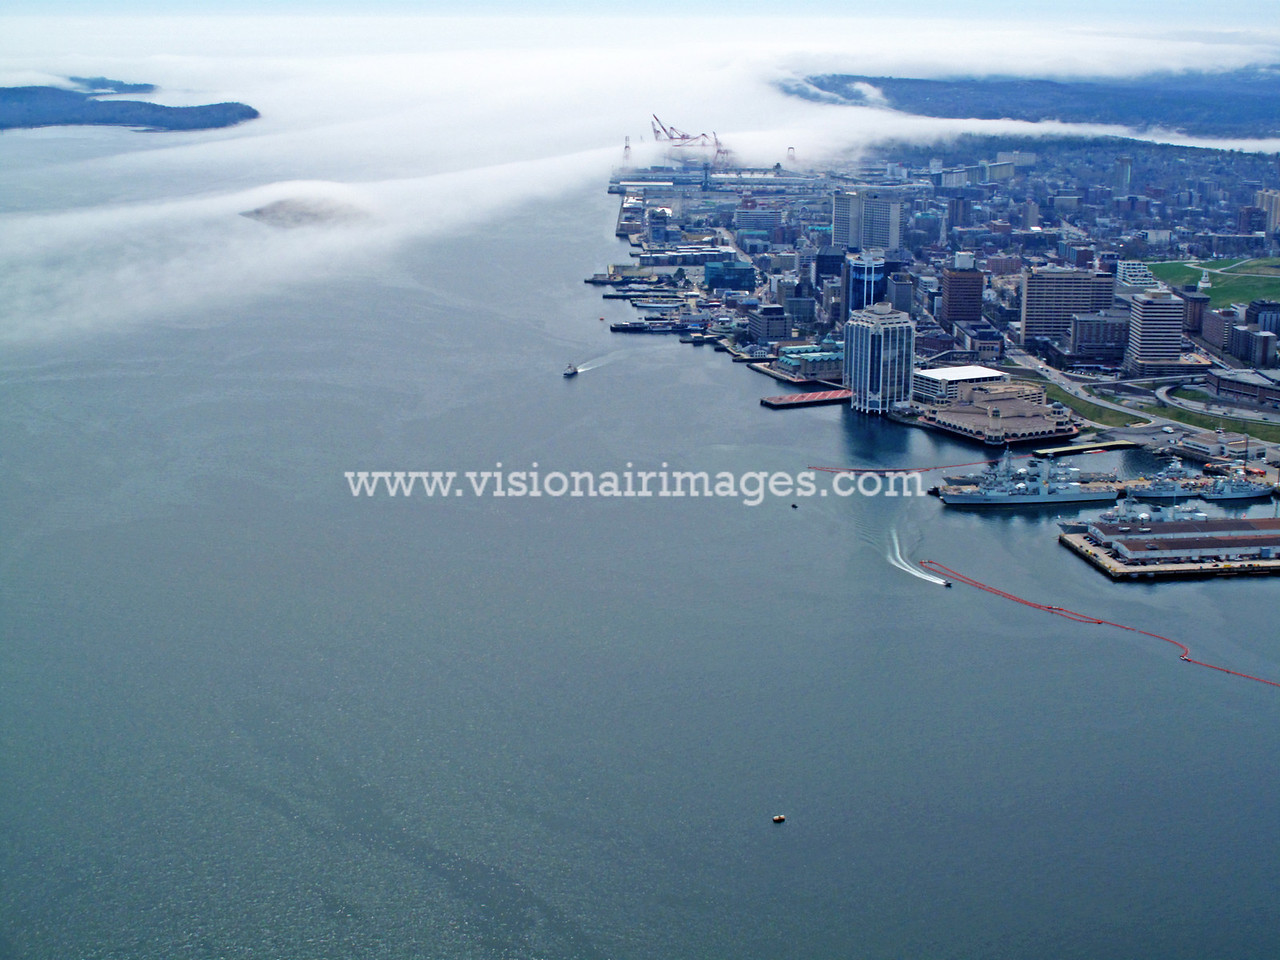 Windmill Road, 7, Dartmouth, Halifax Harbour, Ferry, Downtown Halifax, Nova Scotia, Canada